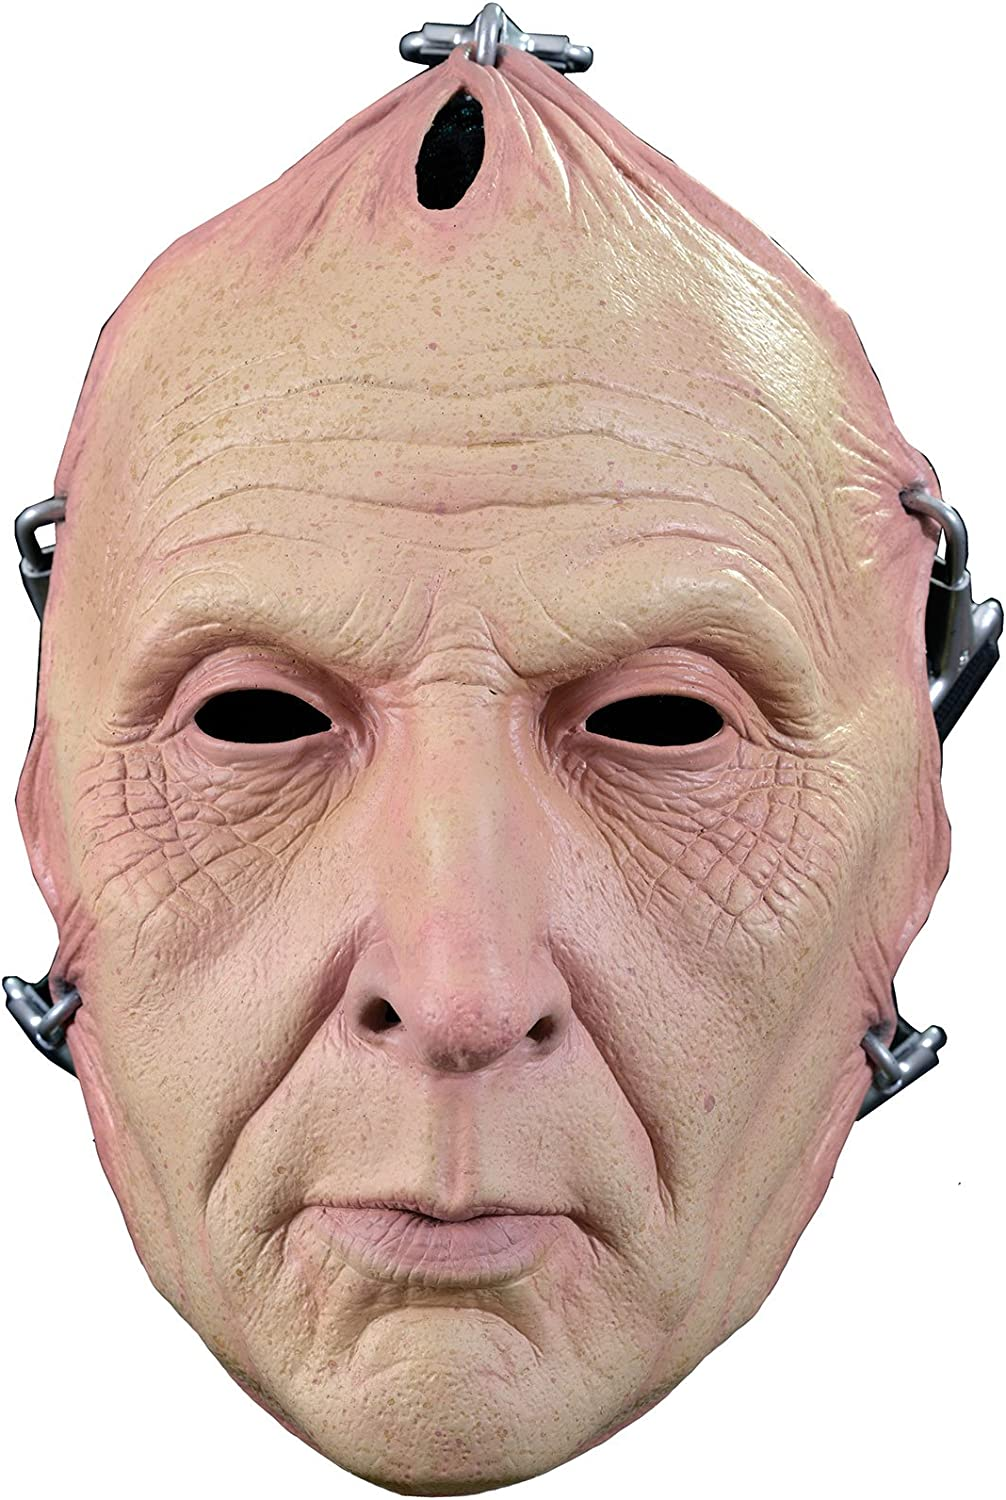 New arrival Trick or Treat Studios Men's Saw-Jigsaw Face Flesh New product! New type Mask